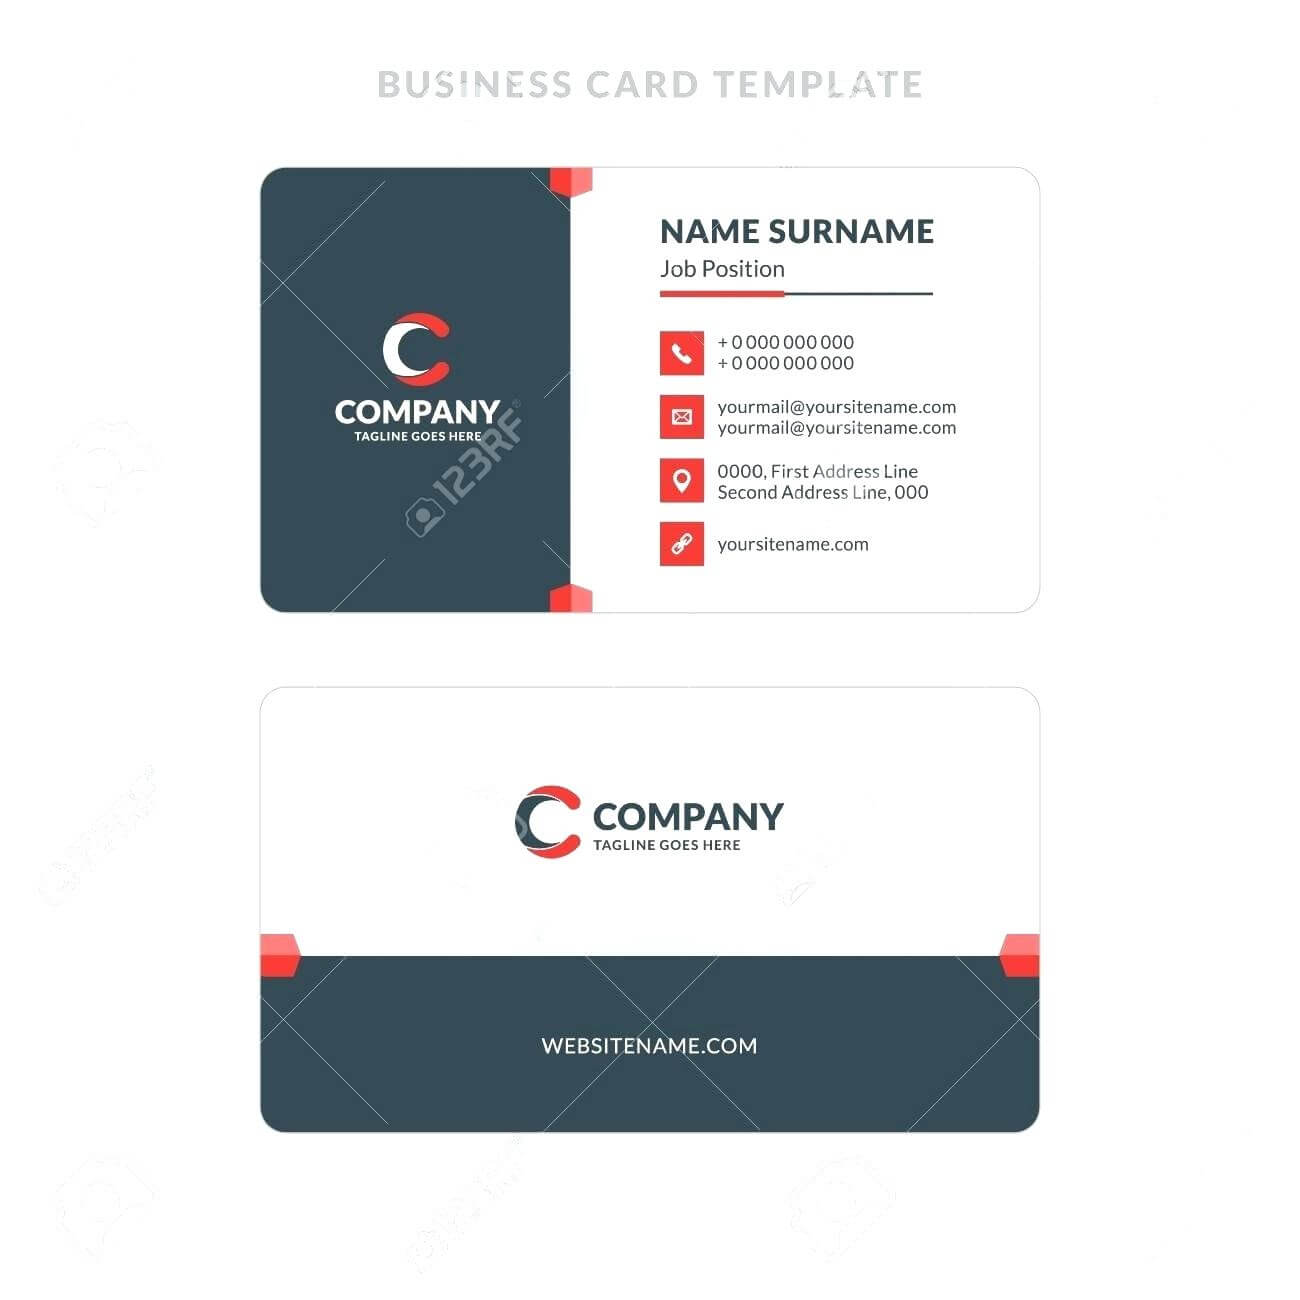 015 Double Sided Business Card Template Illustrator Best Of Inside 2 Sided Business Card Template Word